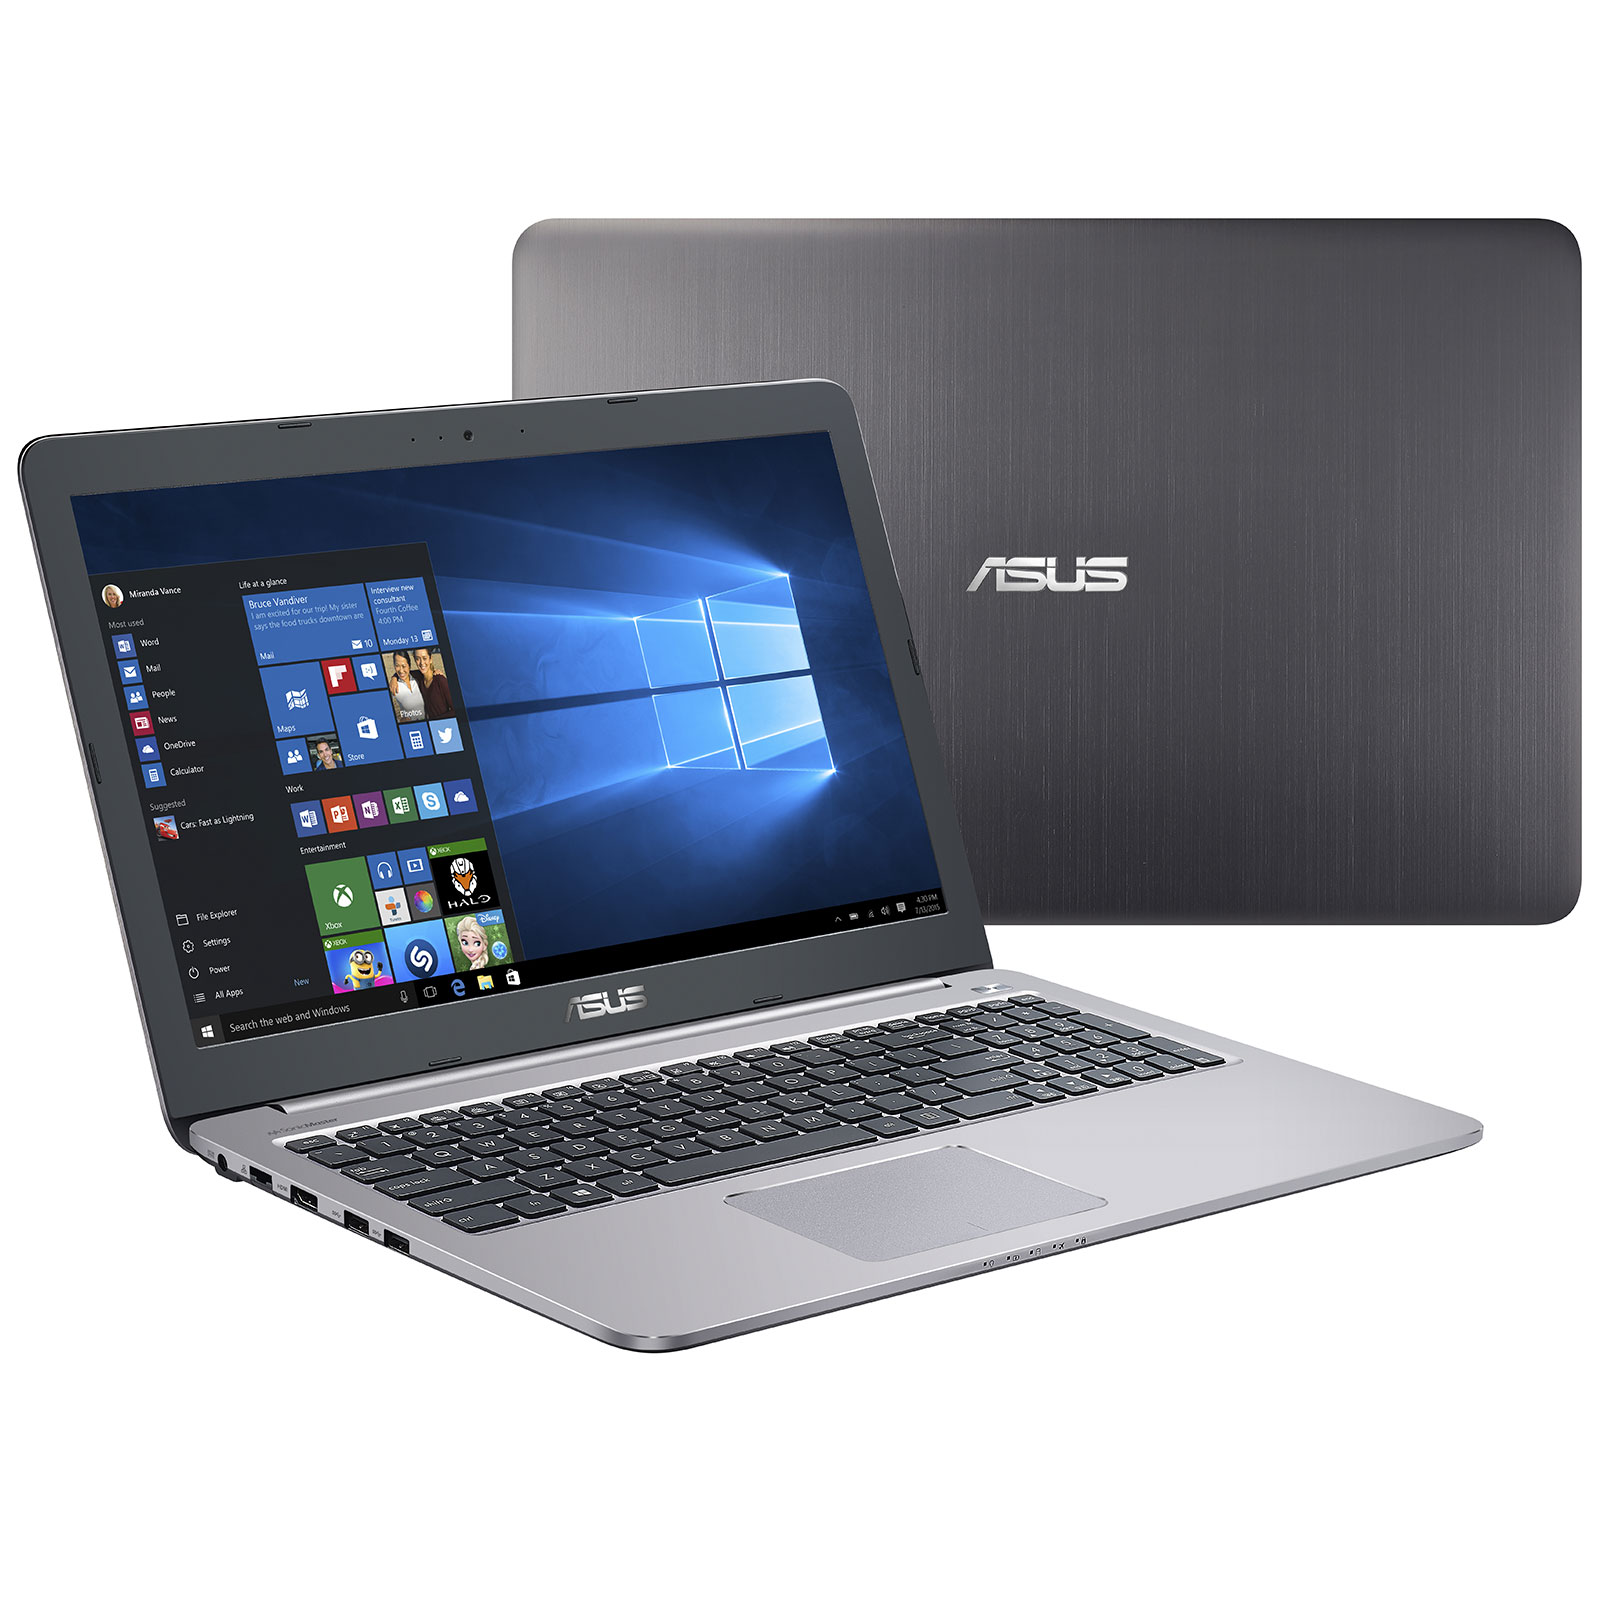 asus k501ux dm745t pc portable asus sur. Black Bedroom Furniture Sets. Home Design Ideas